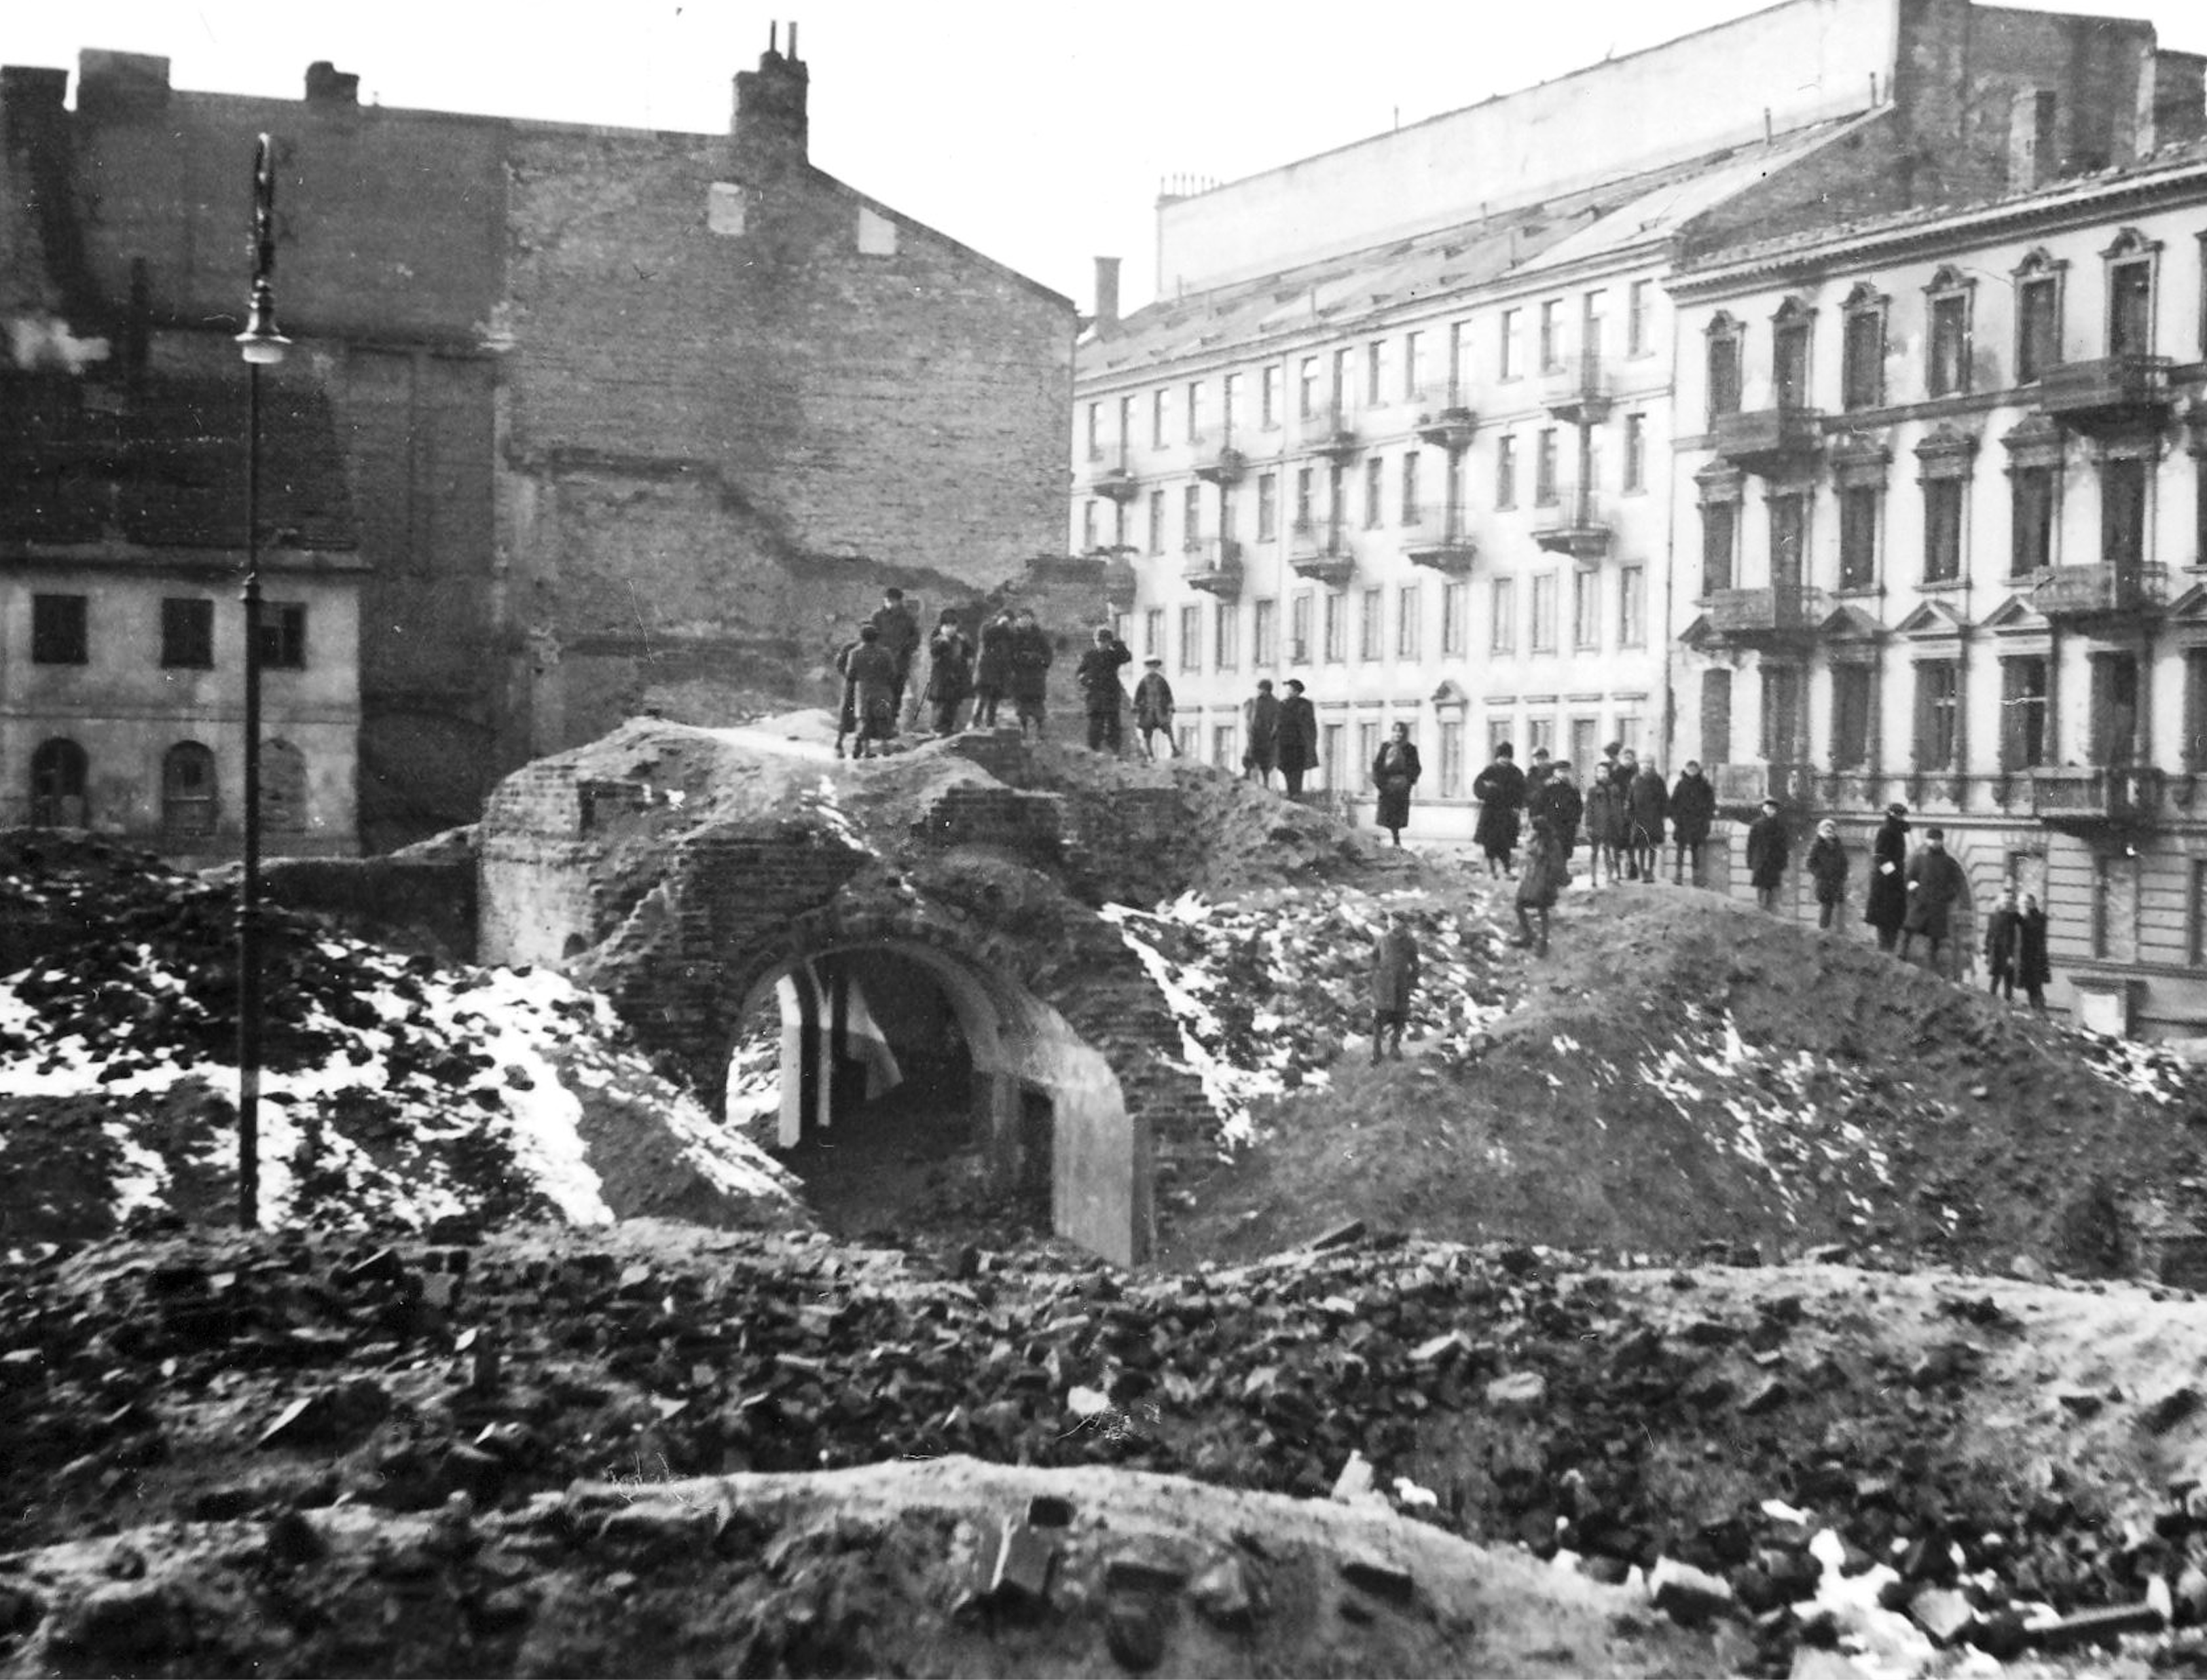 Archival black and white photo of people standing atop massive piles of rubble, all that is left of the Warsaw Ghetto.